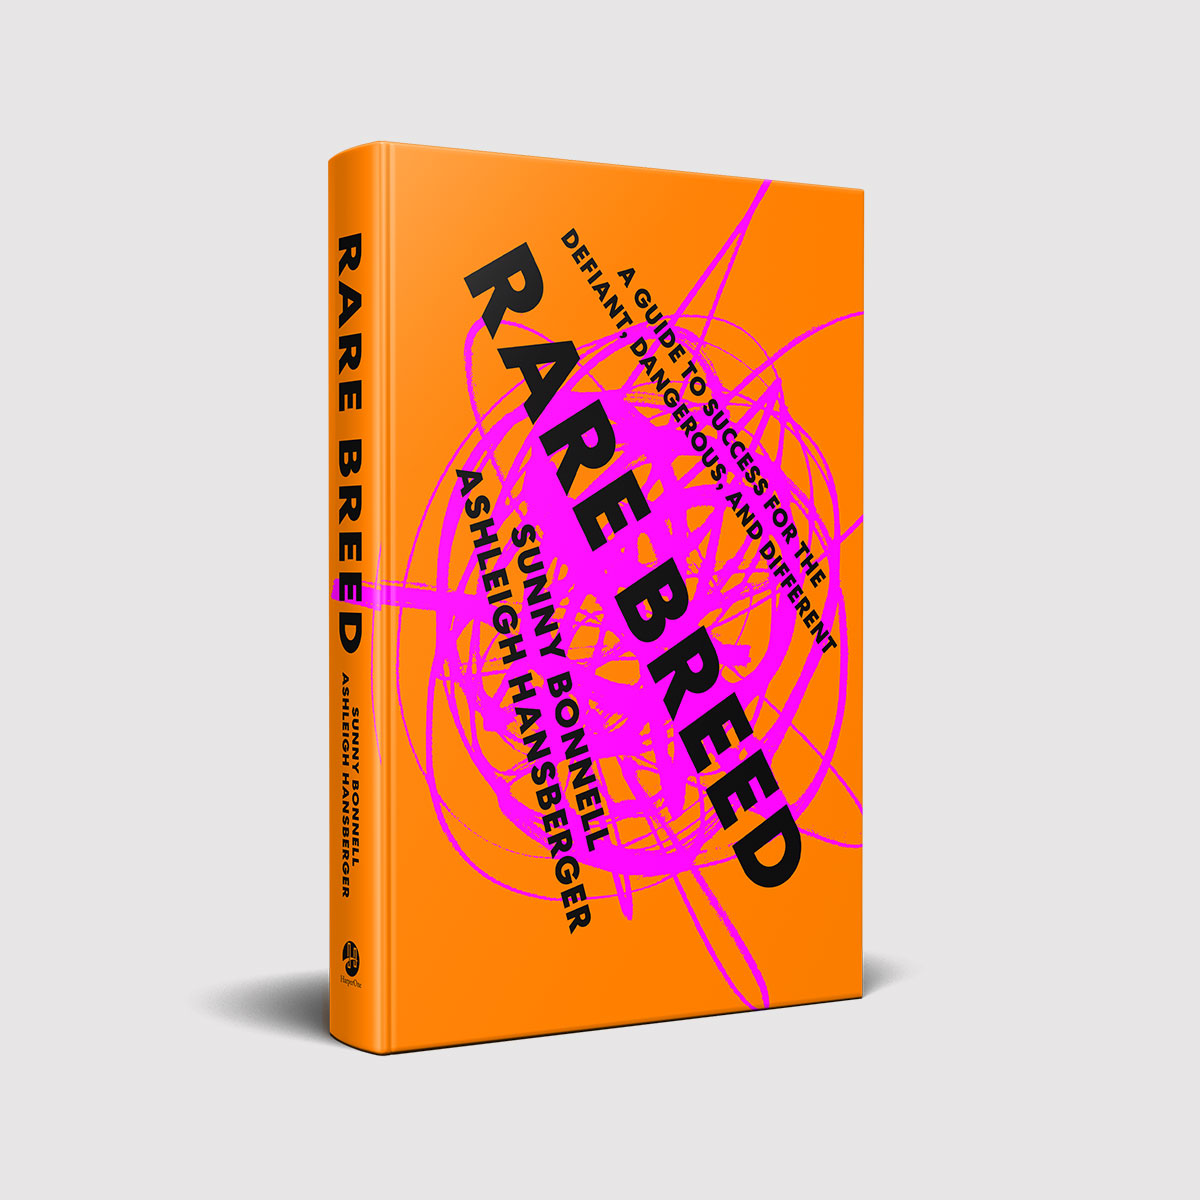 Rare Breed: A Guide to Success for the Defiant, Dangerous, & Different (Author Signed)